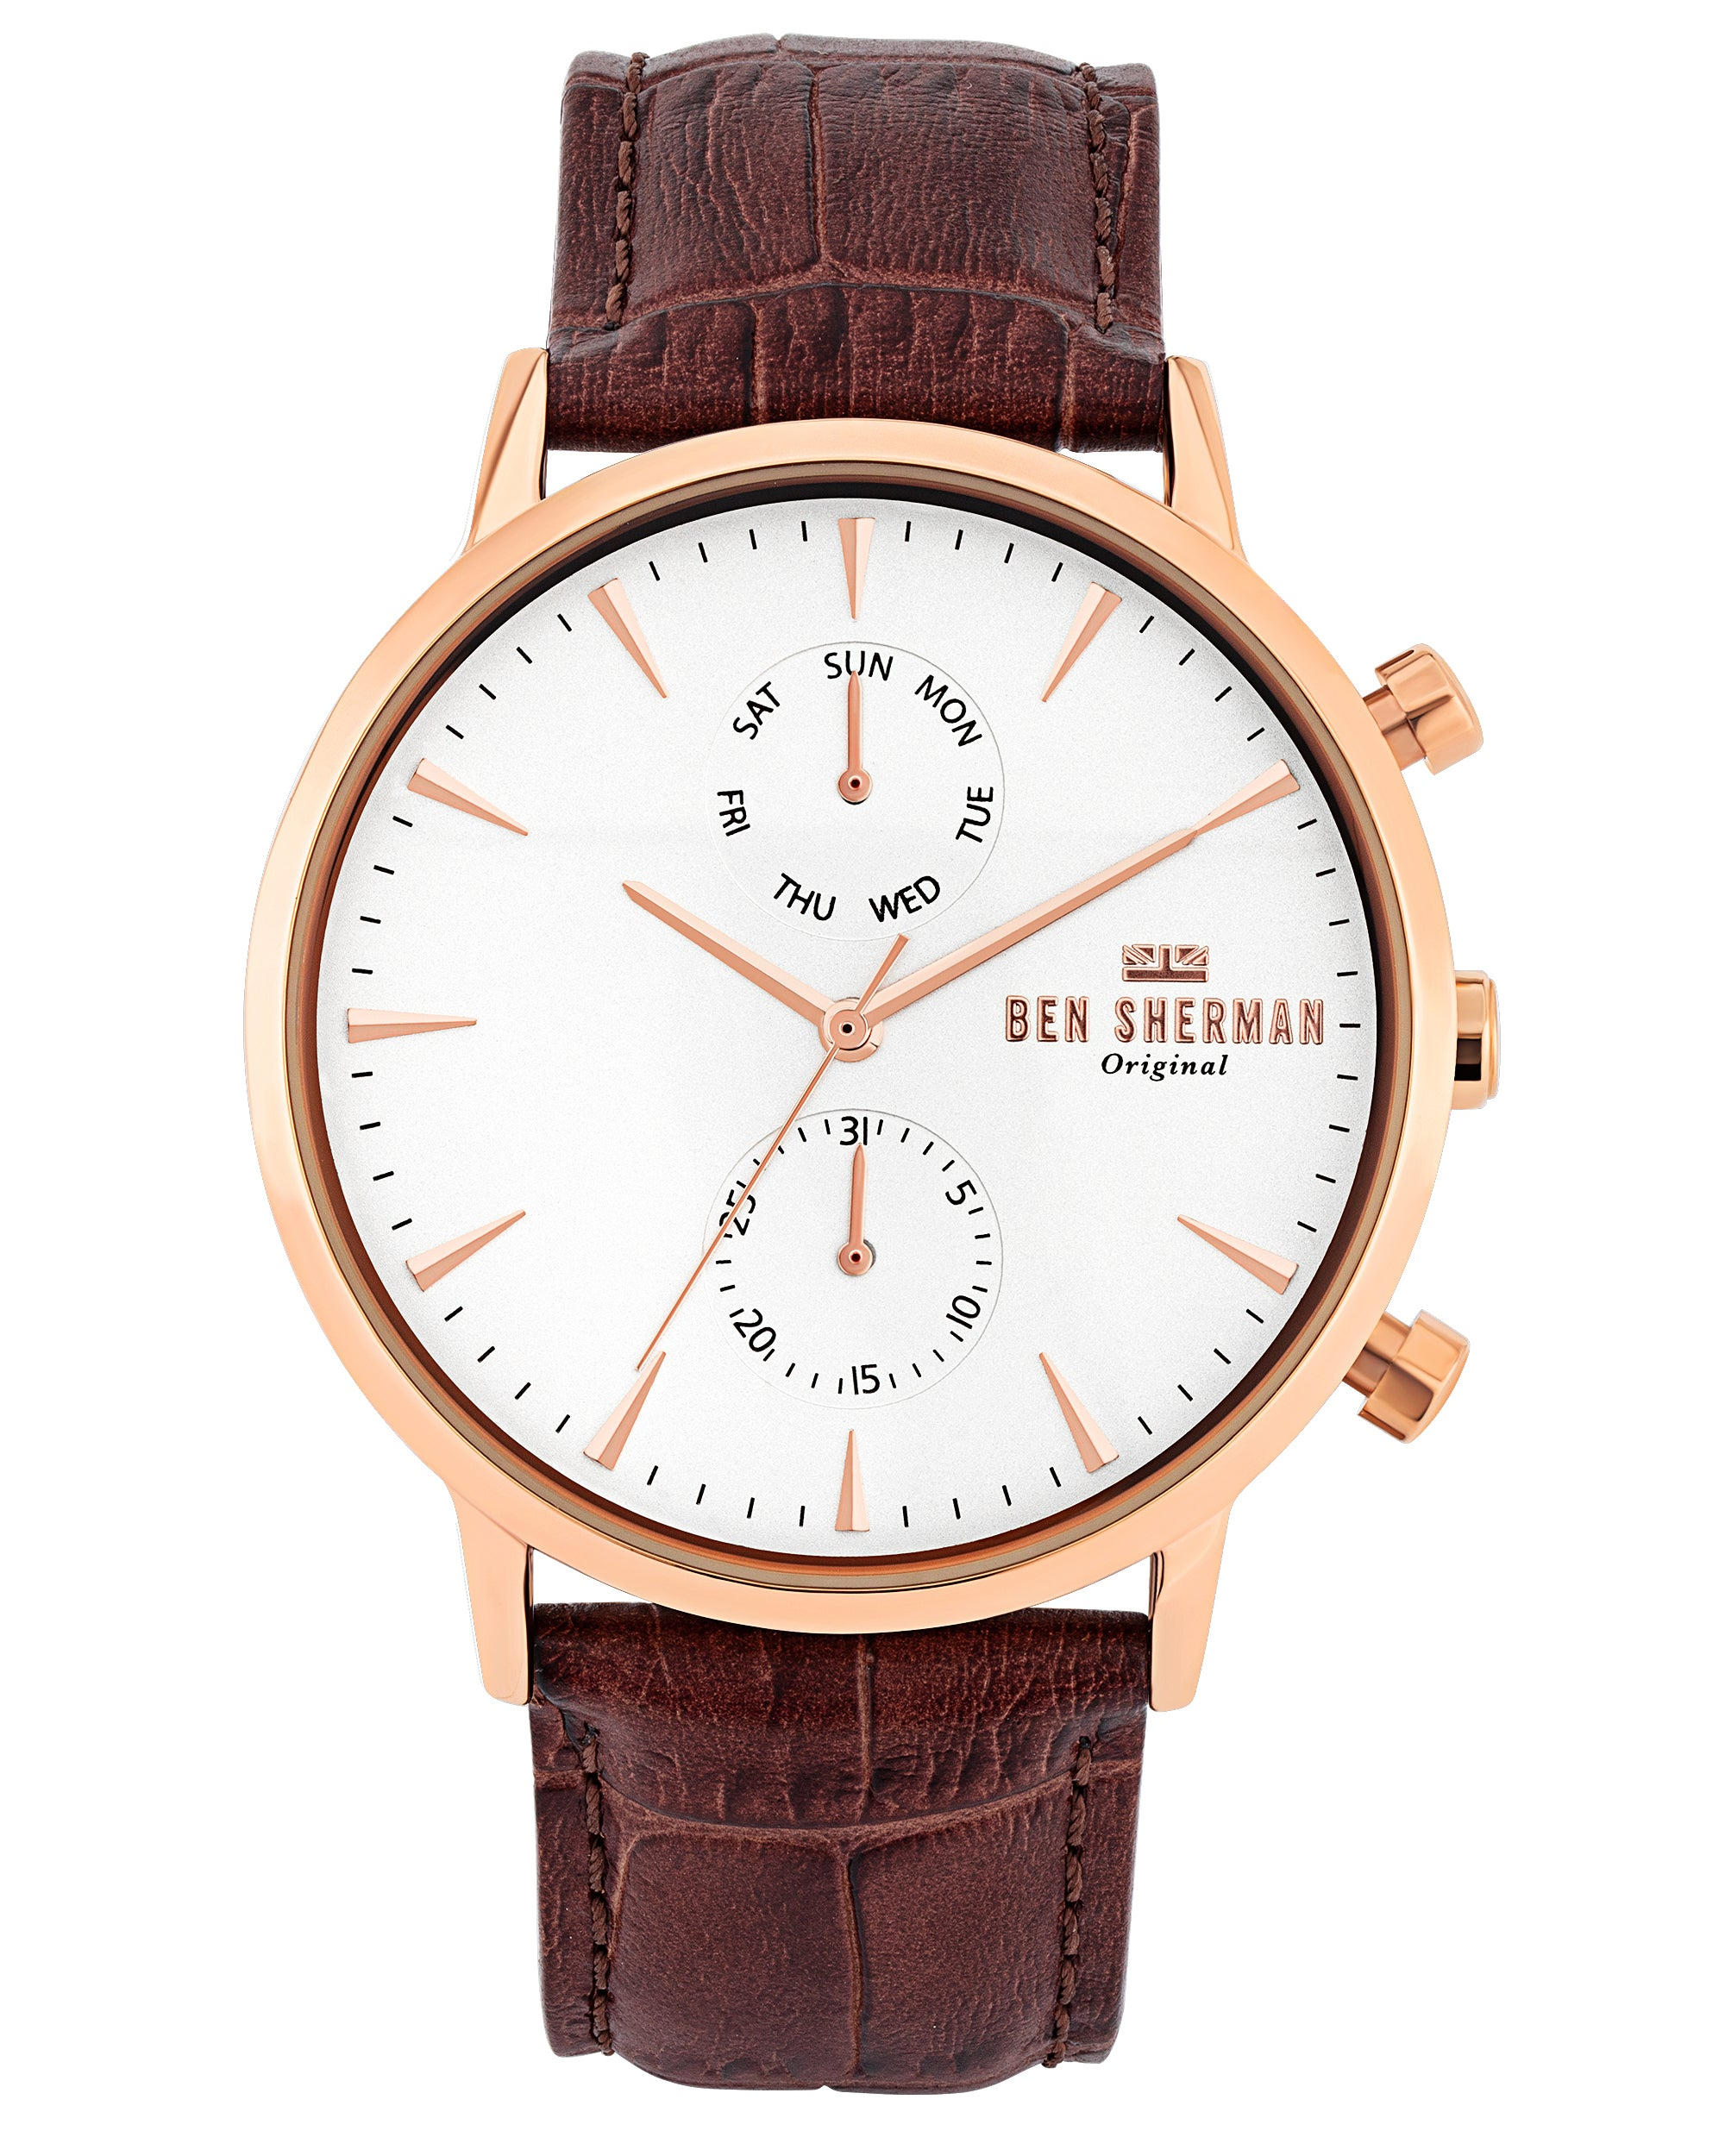 Men's Portobello Professional Watch - Brown/Off-White/Rose Gold